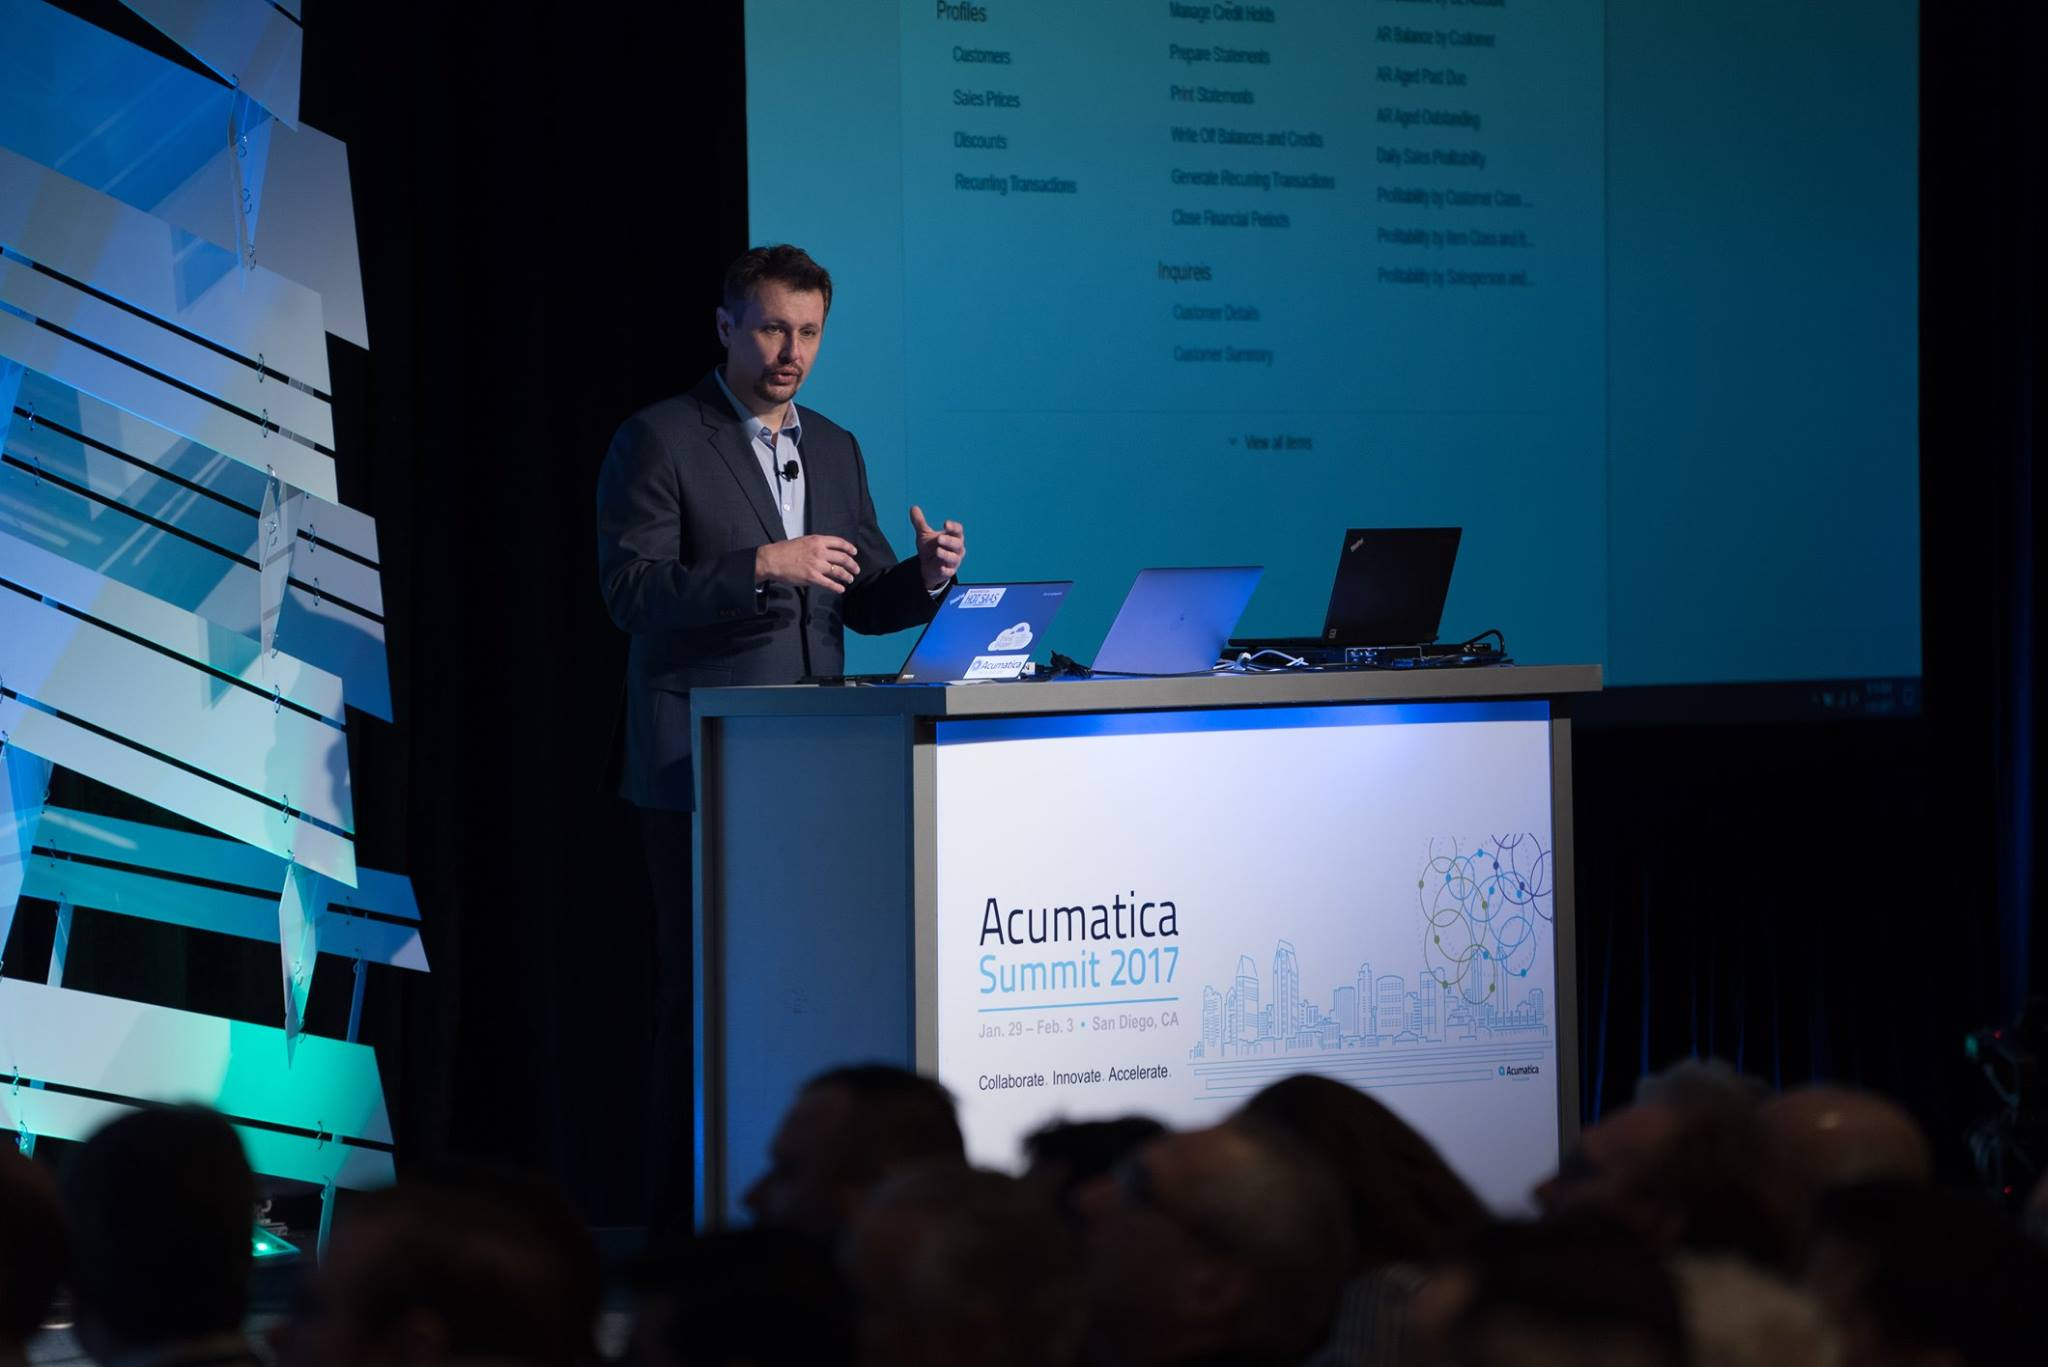 Acumatica CTO Mike Chtchelkonogov demonstrates the new Acumatica features and integrations